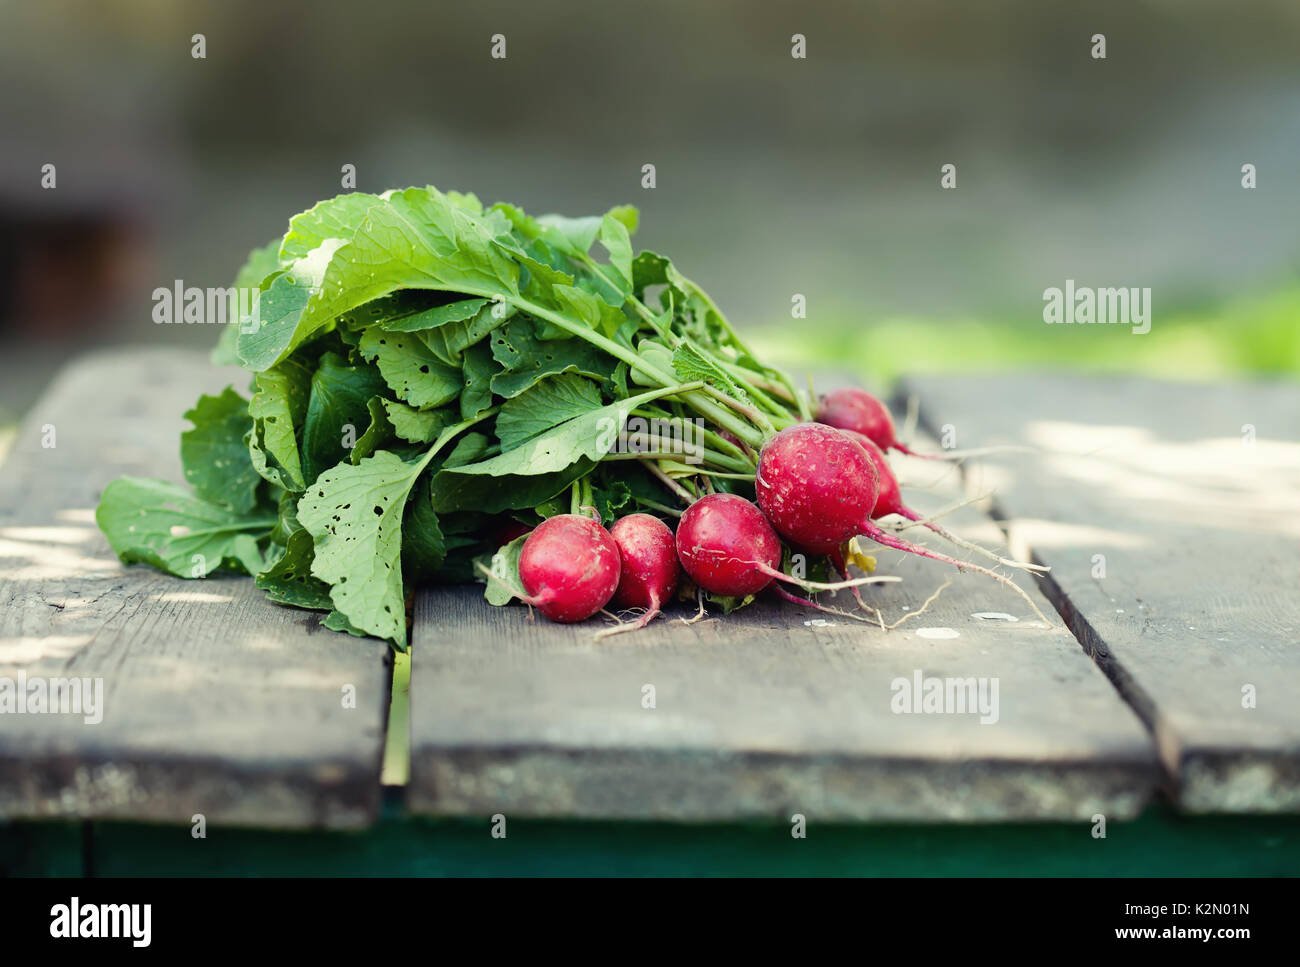 Ripe radish on wooden table background. Farmers food still life. Shallow depth field, selective focus - Stock Image